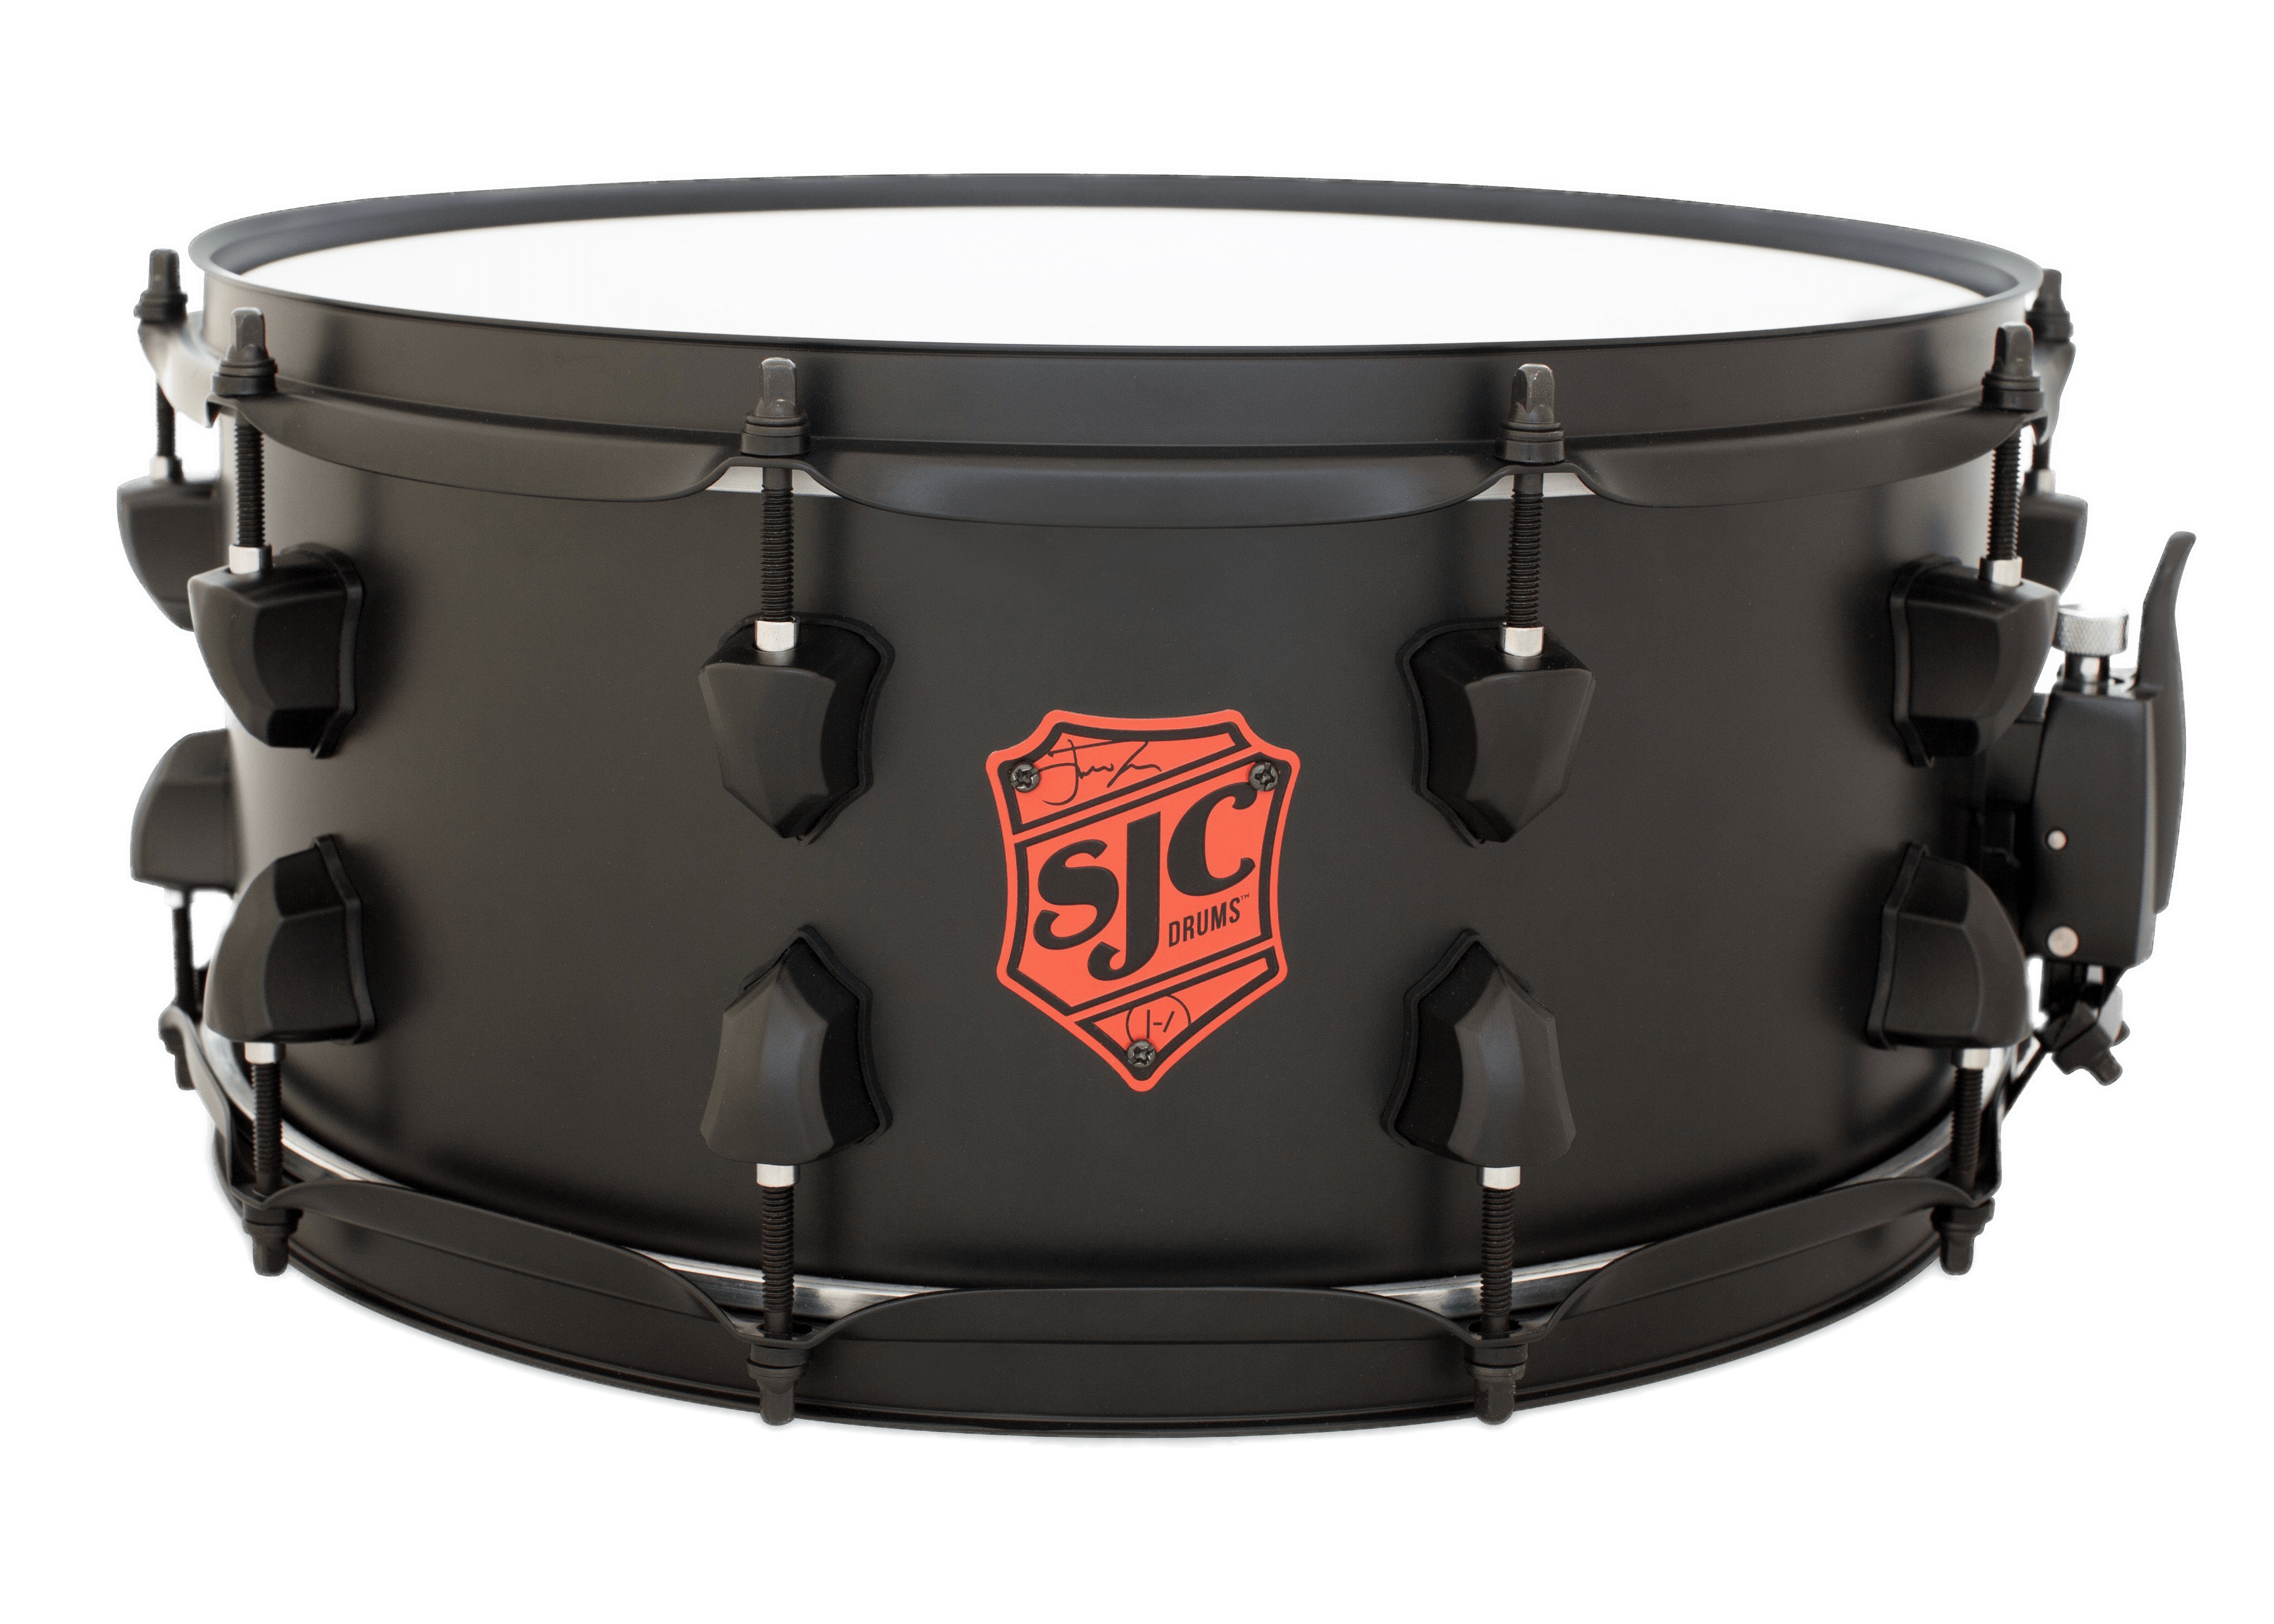 Black snare transparent png. Drums clipart marching band drum